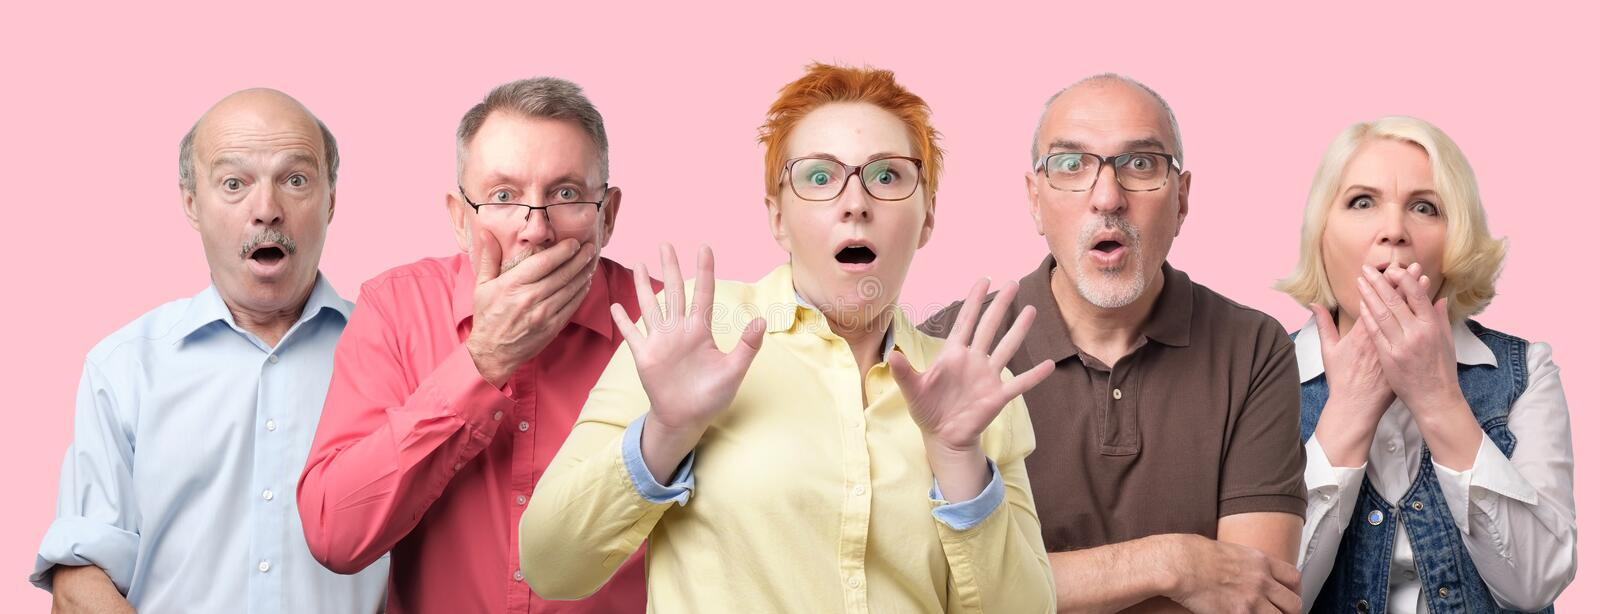 Can not believe my eyes. Oh no concept. Oh no concept. Collage of mature men and women looking at camera, keeping mouth wide opened feeling shocked and stressed stock images